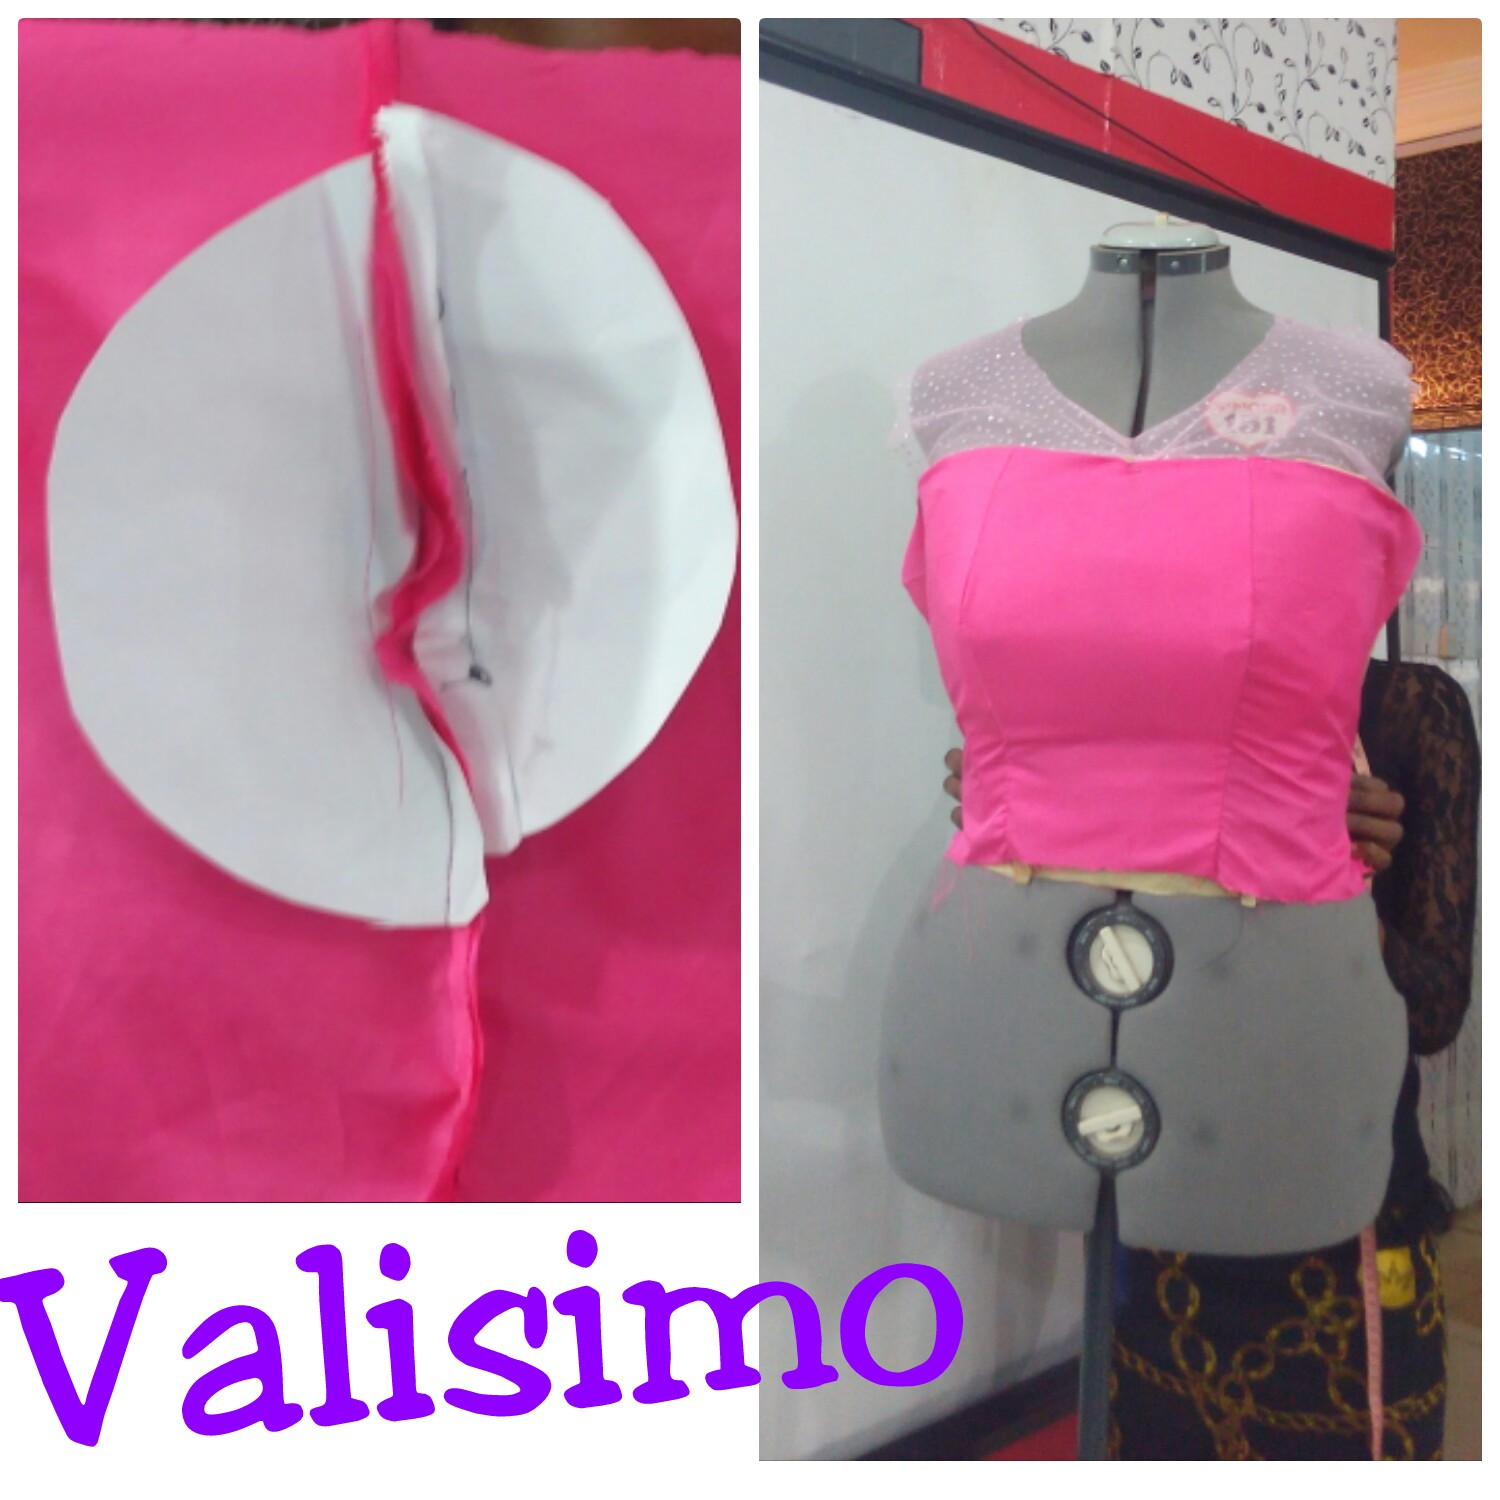 194d478d87 Padded peplum blouse. Making a padded outfit can be challengingValisimo